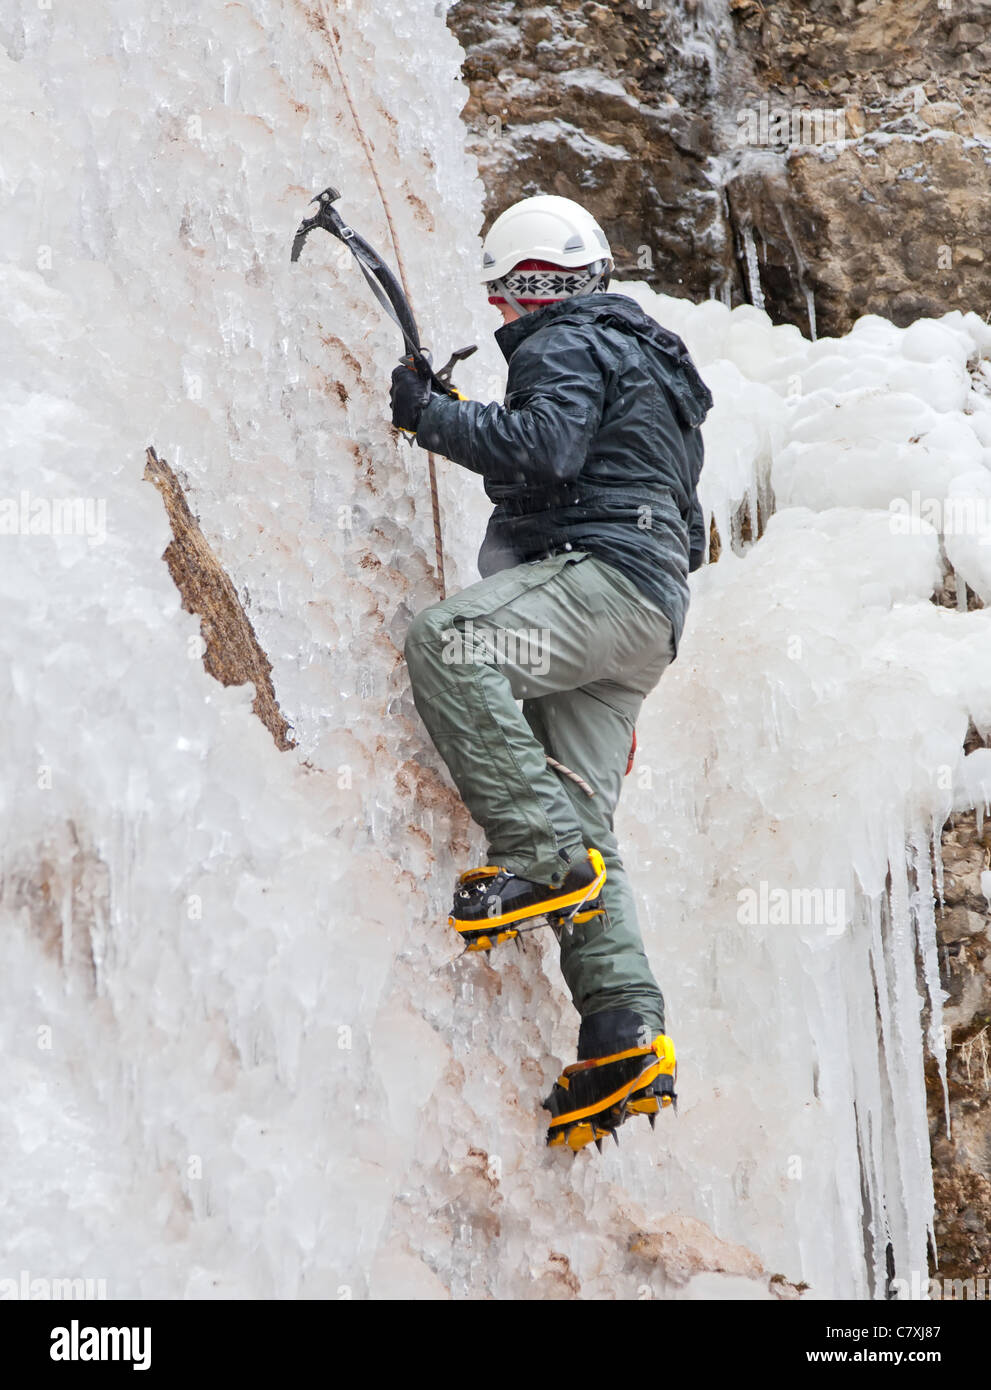 Man with ice axes and crampons climbing on icefall - Stock Image